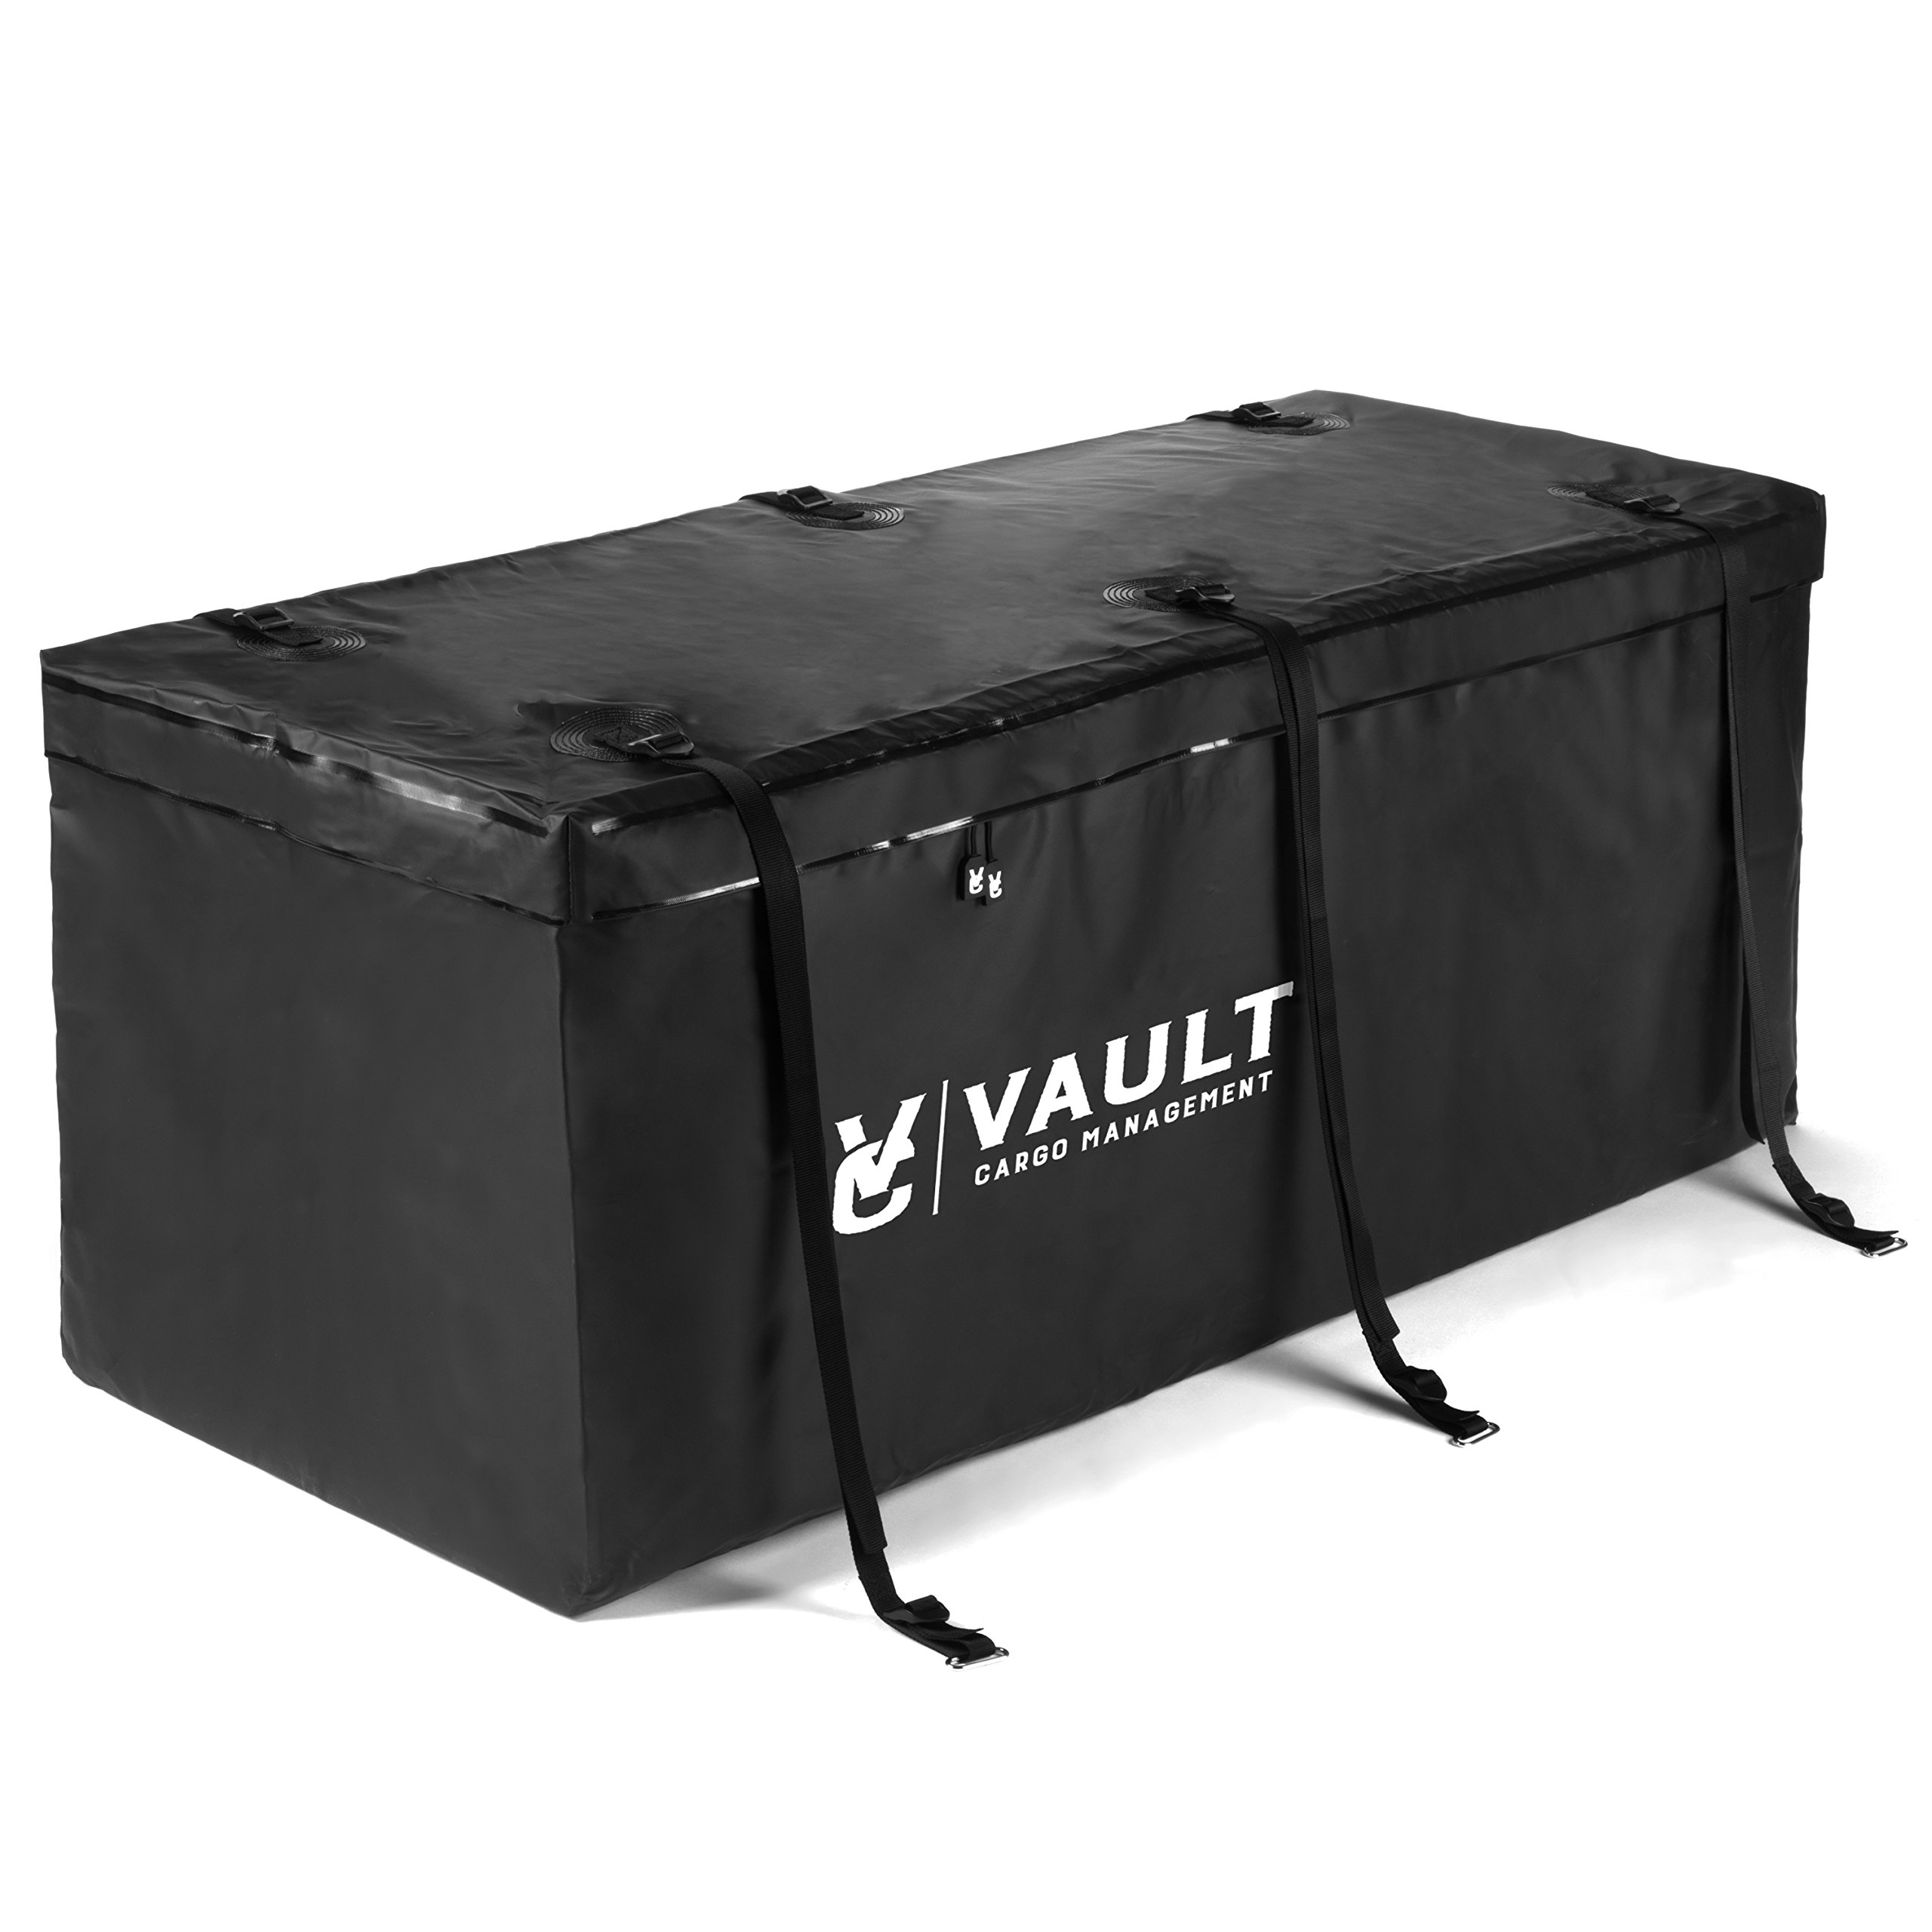 Hitch Cargo Carrier Bag from Vault Cargo - 15 Cubic Feet - Heavy Duty Waterproof Cargo Hitch Carrier Bag Perfect for Camping, Luggage, and Outdoor Gear. Cargo Hitch Bag (59'' x 24'' x 24'') by Vault Cargo Management